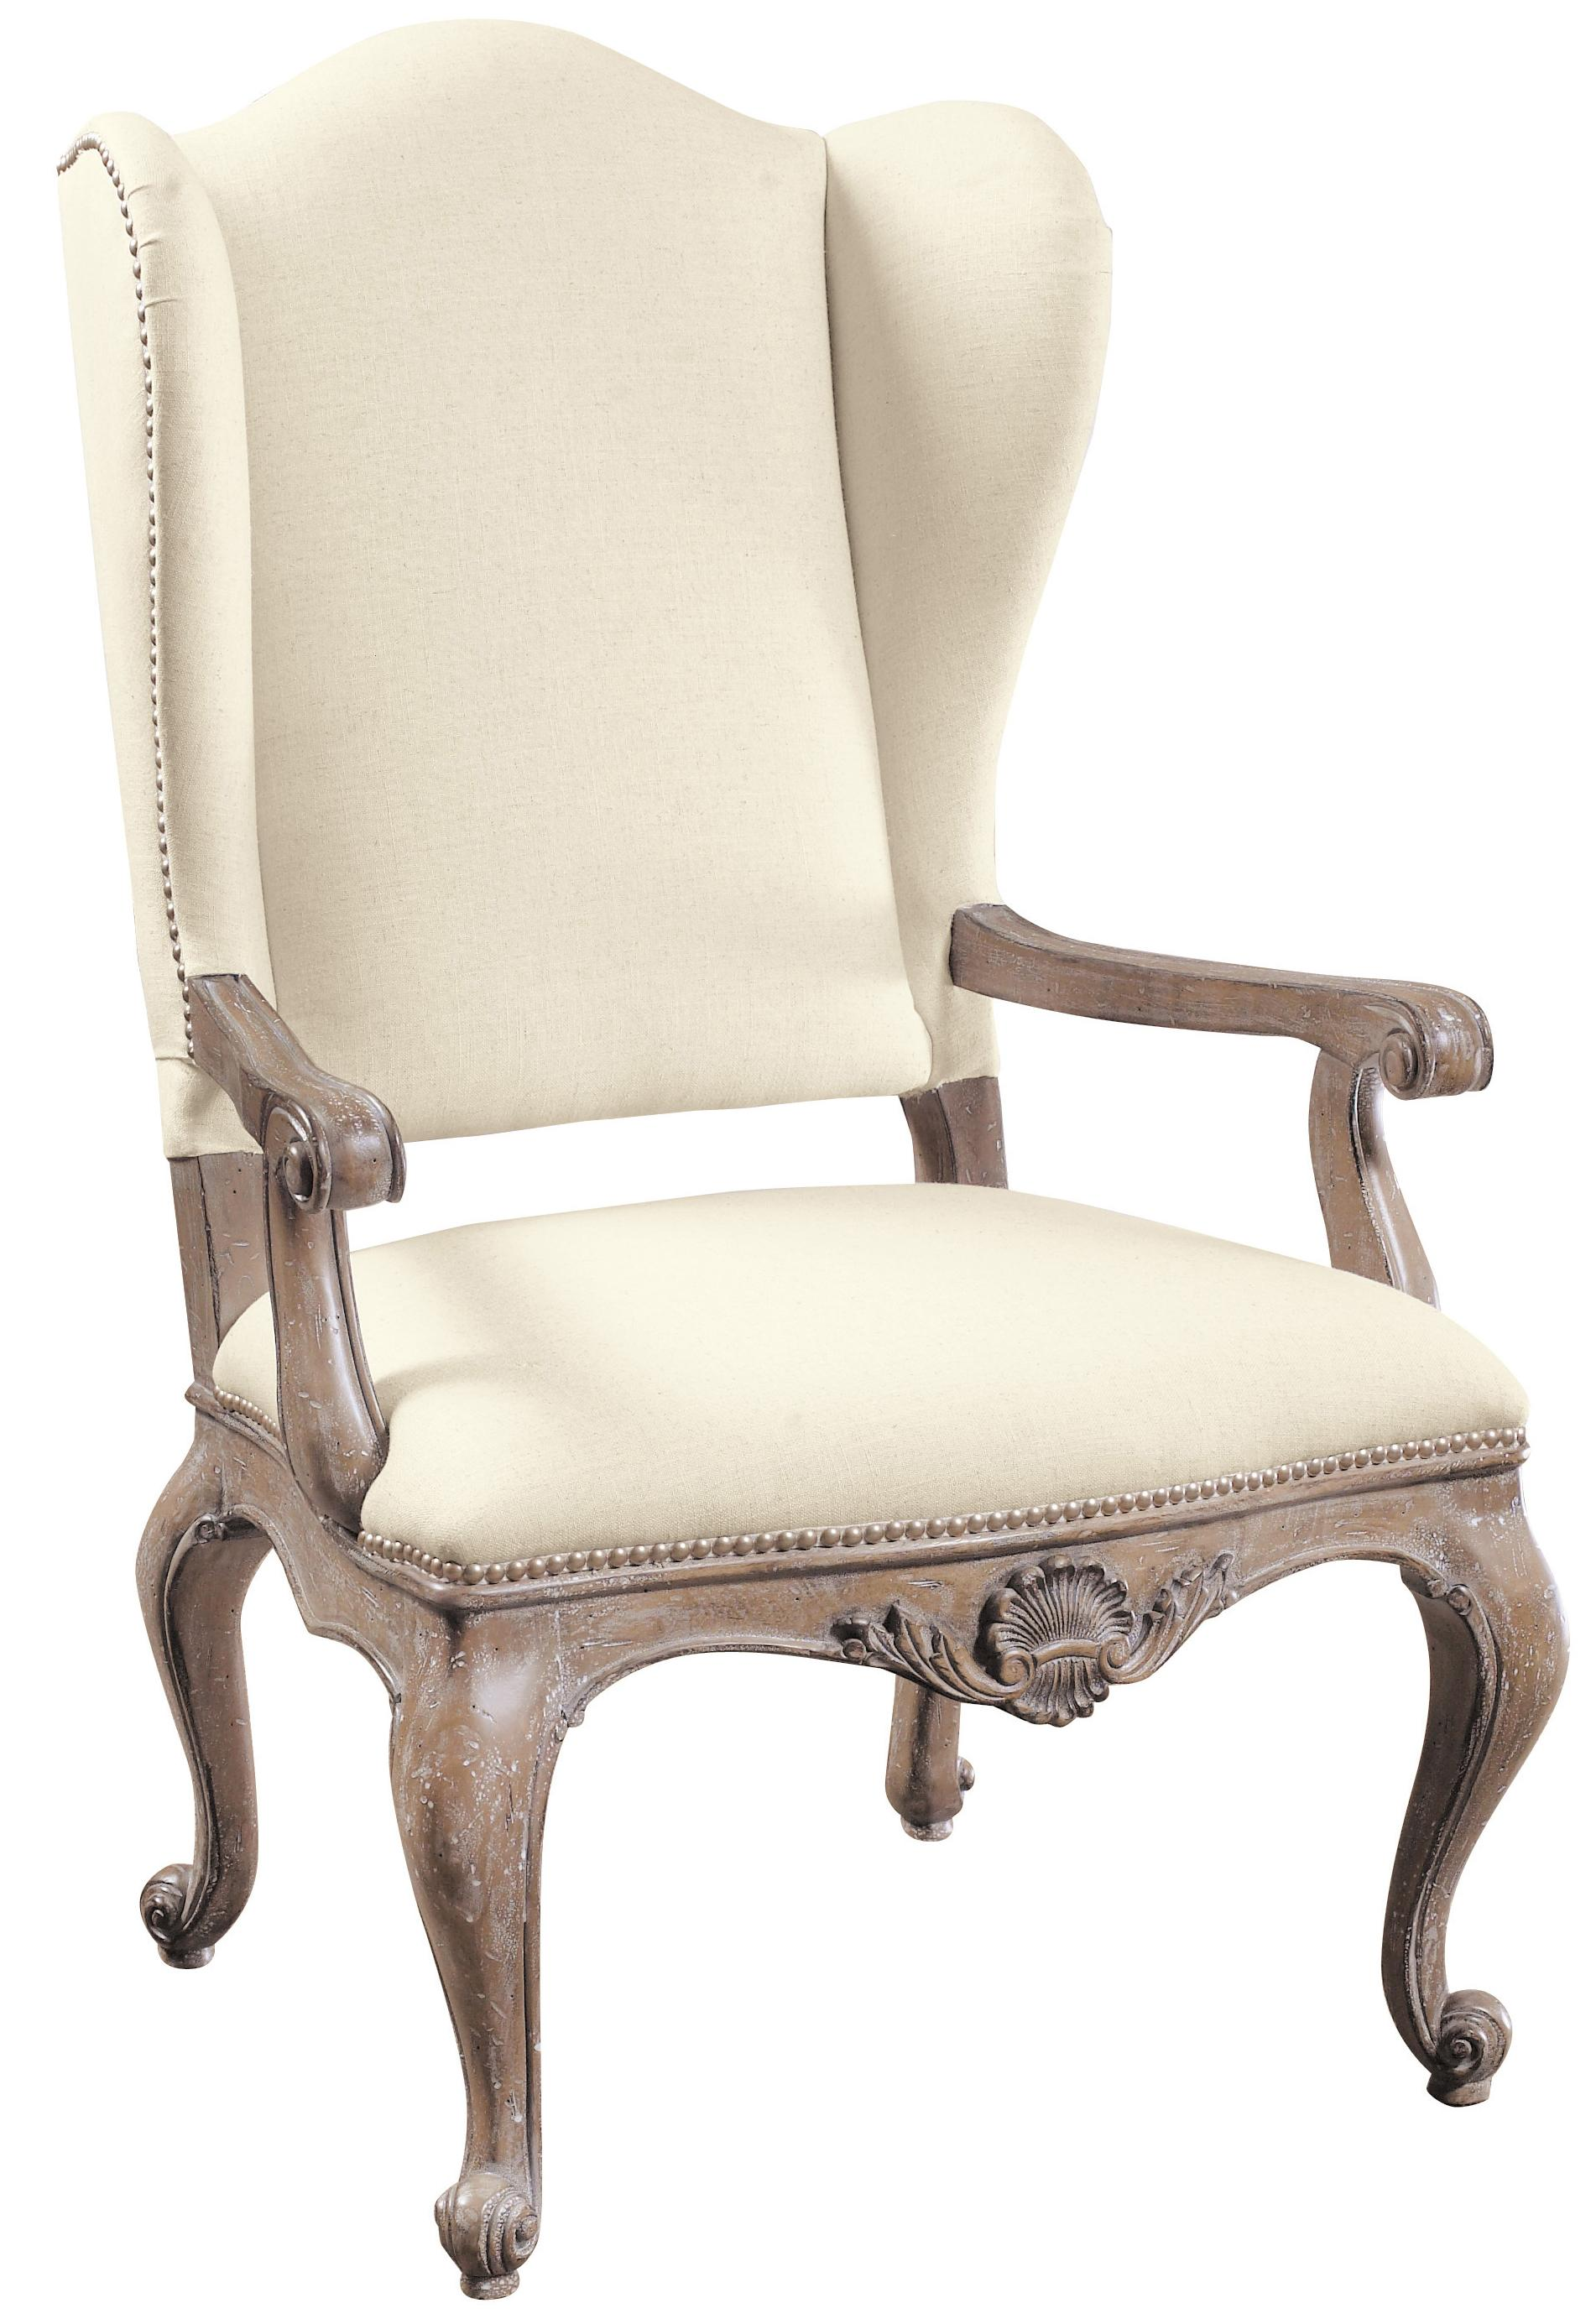 cream upholstered dining chairs hammaka nami chair instructions pulaski furniture accentrics home danae arm with